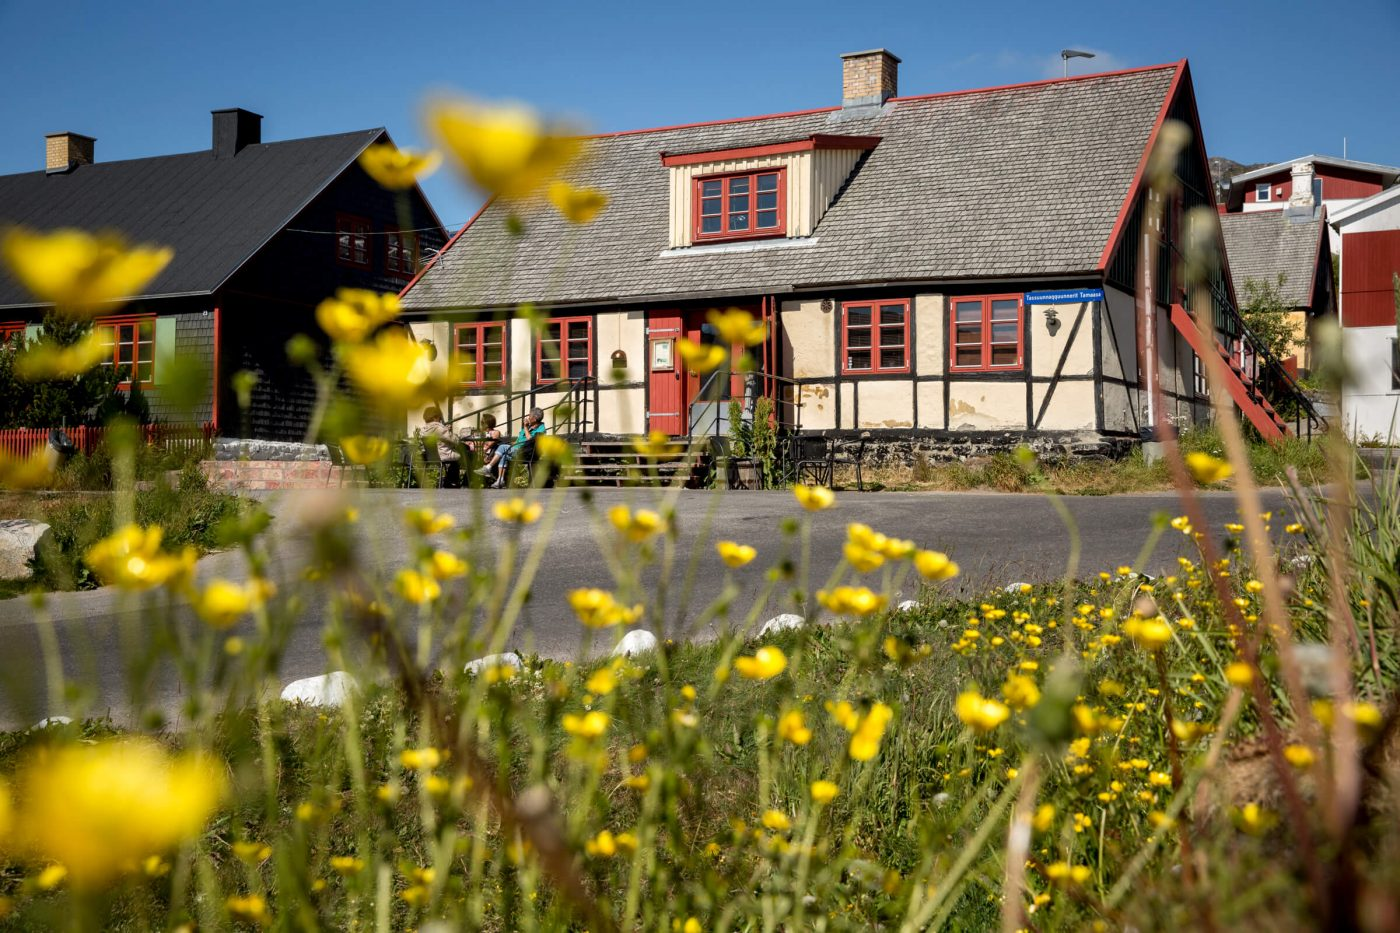 The old buildings in Qaqortoq town centre in South Greenland. Photo by Mads Pihl - Visit Greenland